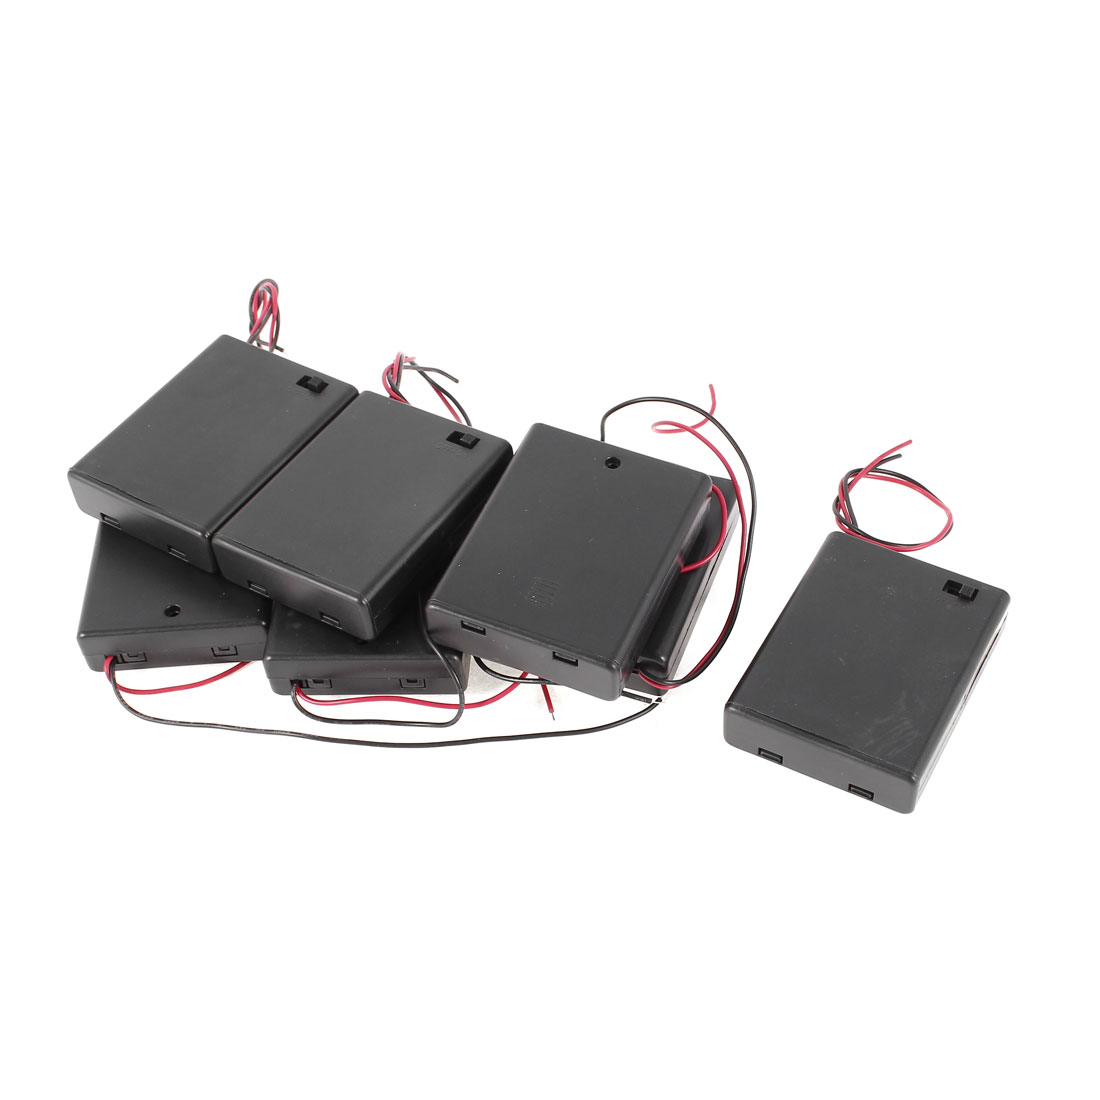 7 Pcs ON/OFF Switch Plastic Cover 4 x 1.5V AAA Battery Case Container Box Holder